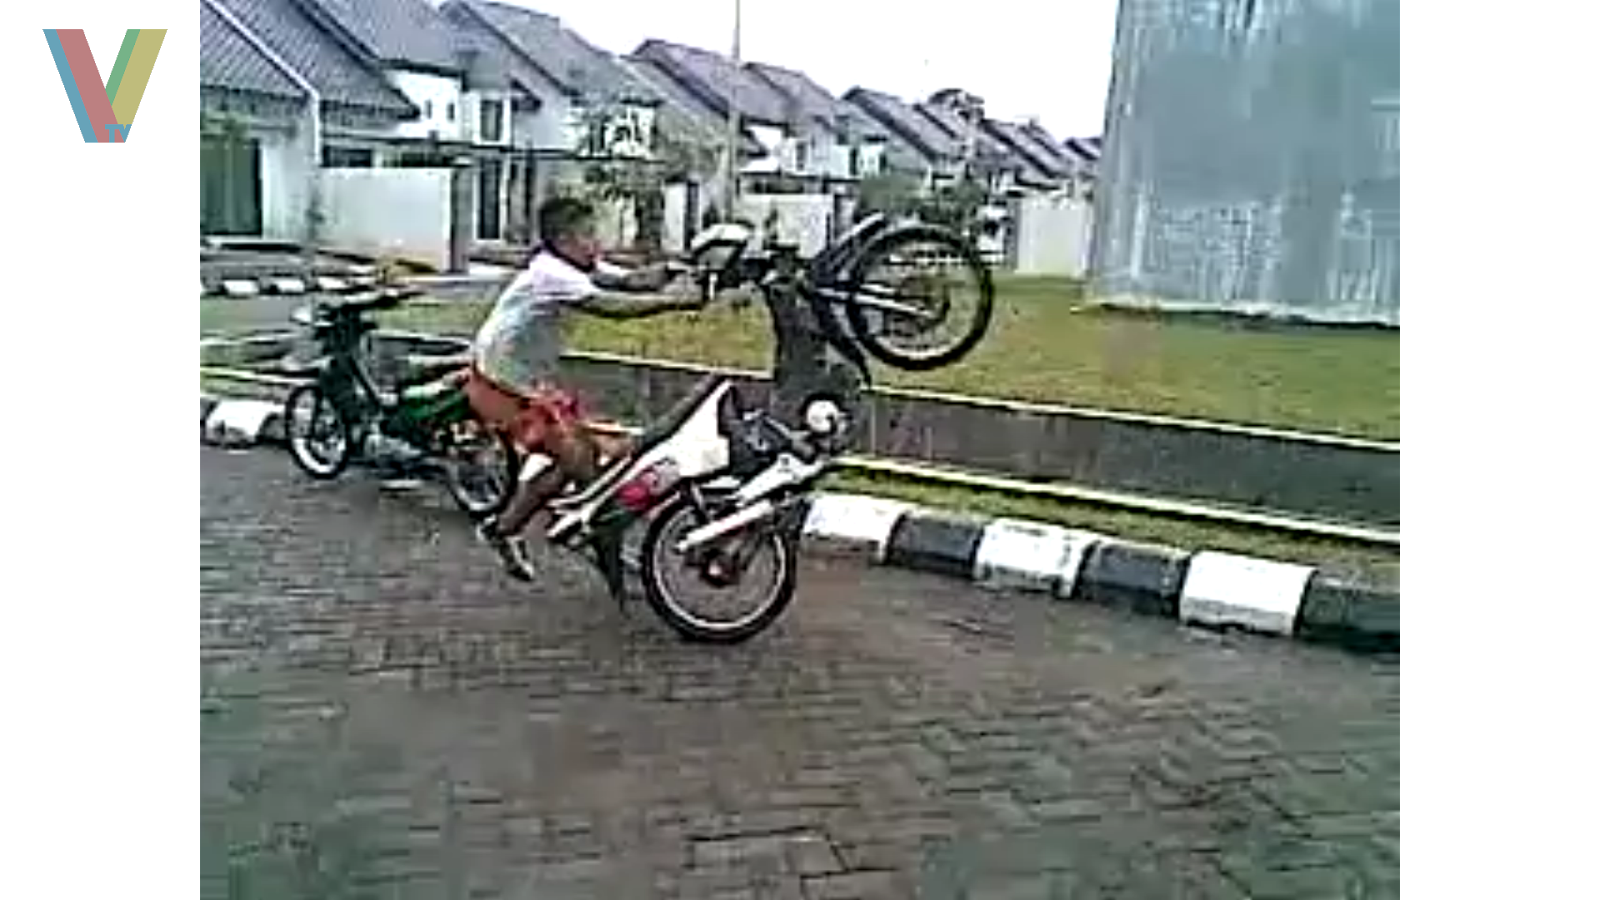 Scooter Wheelie Fail